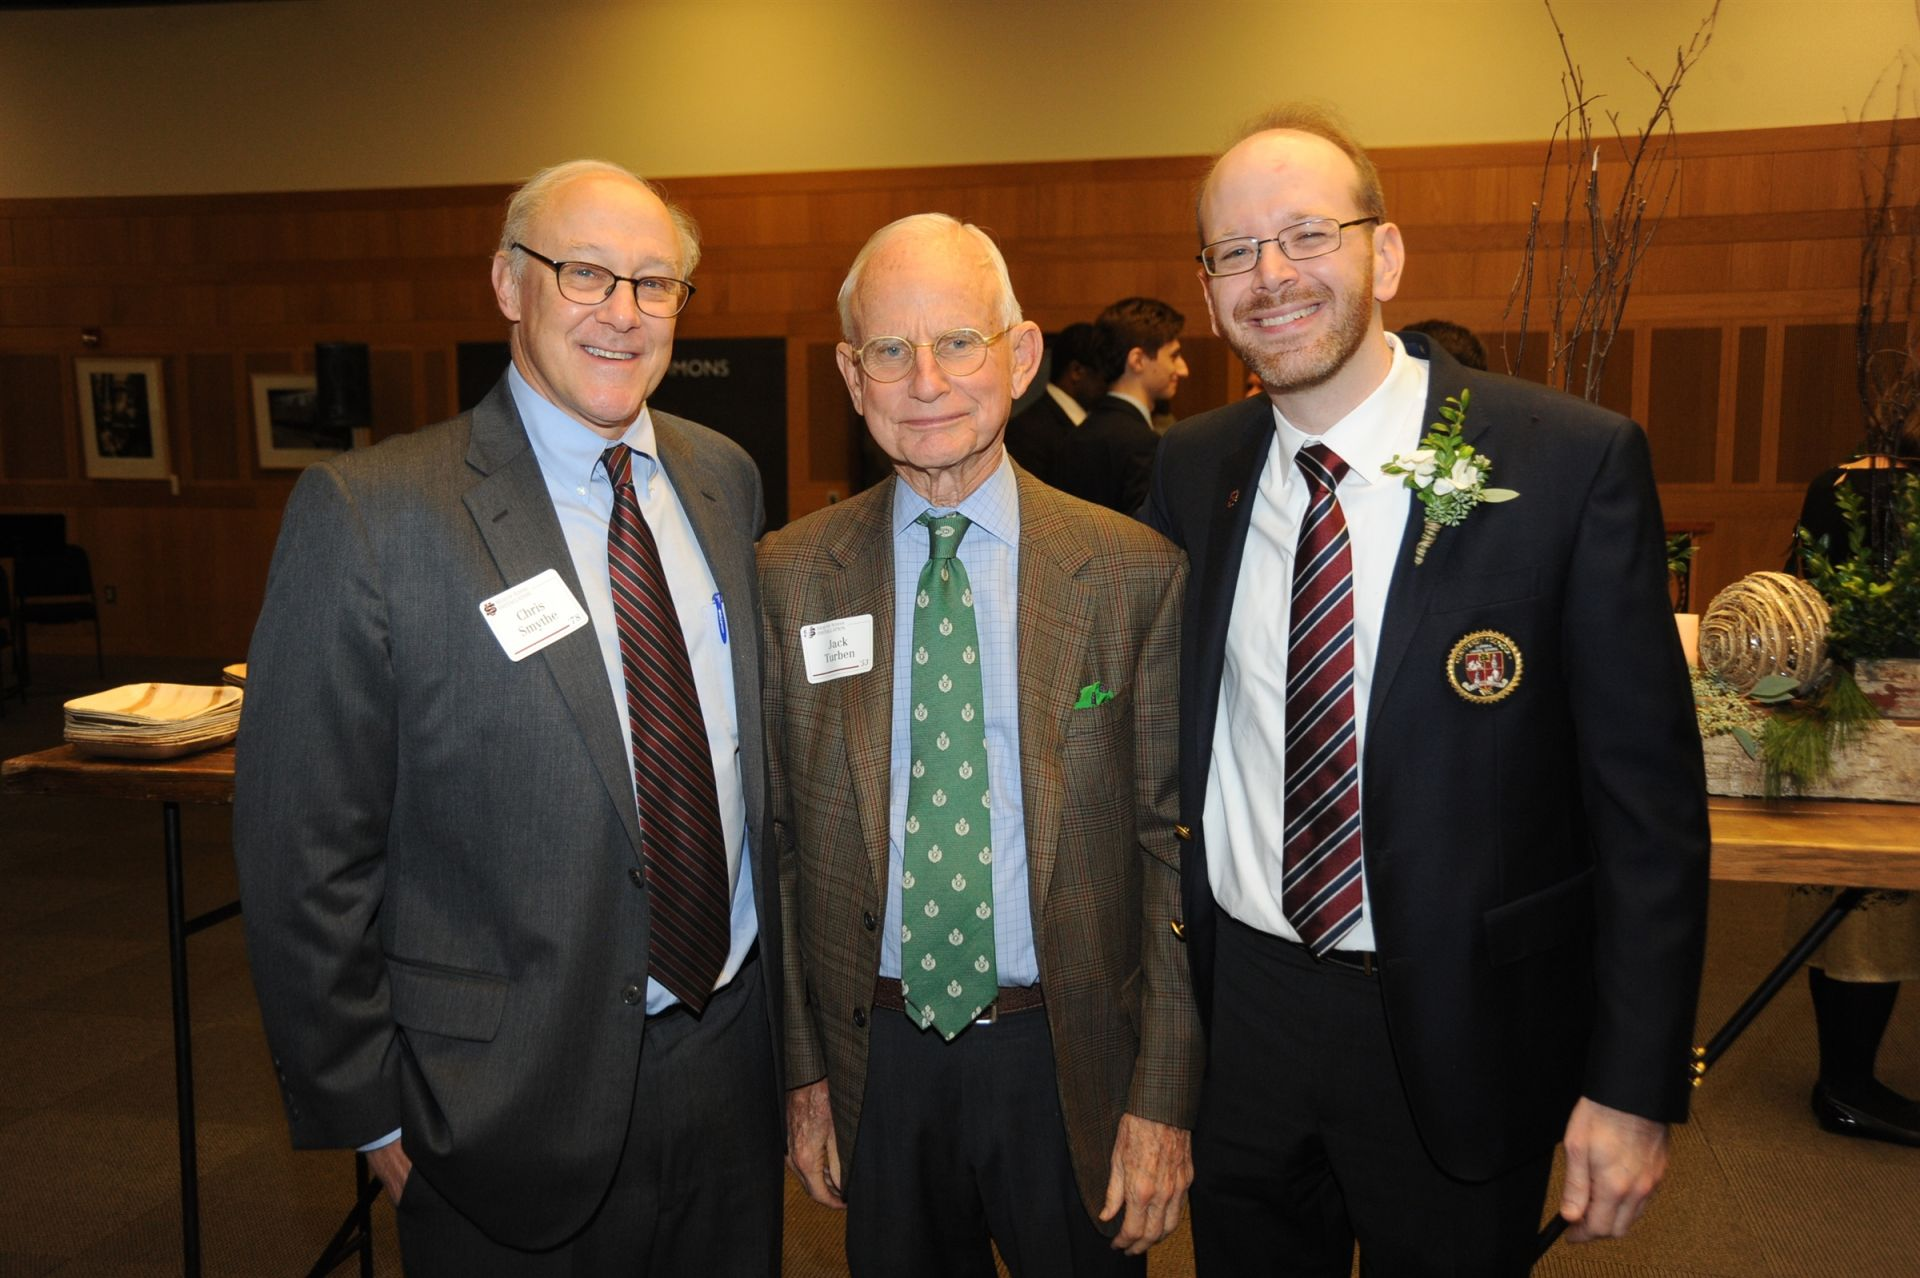 Board President Christopher Smythe '78, Life Trustee Jack Turben '53 and Head of School Patrick Gallagher